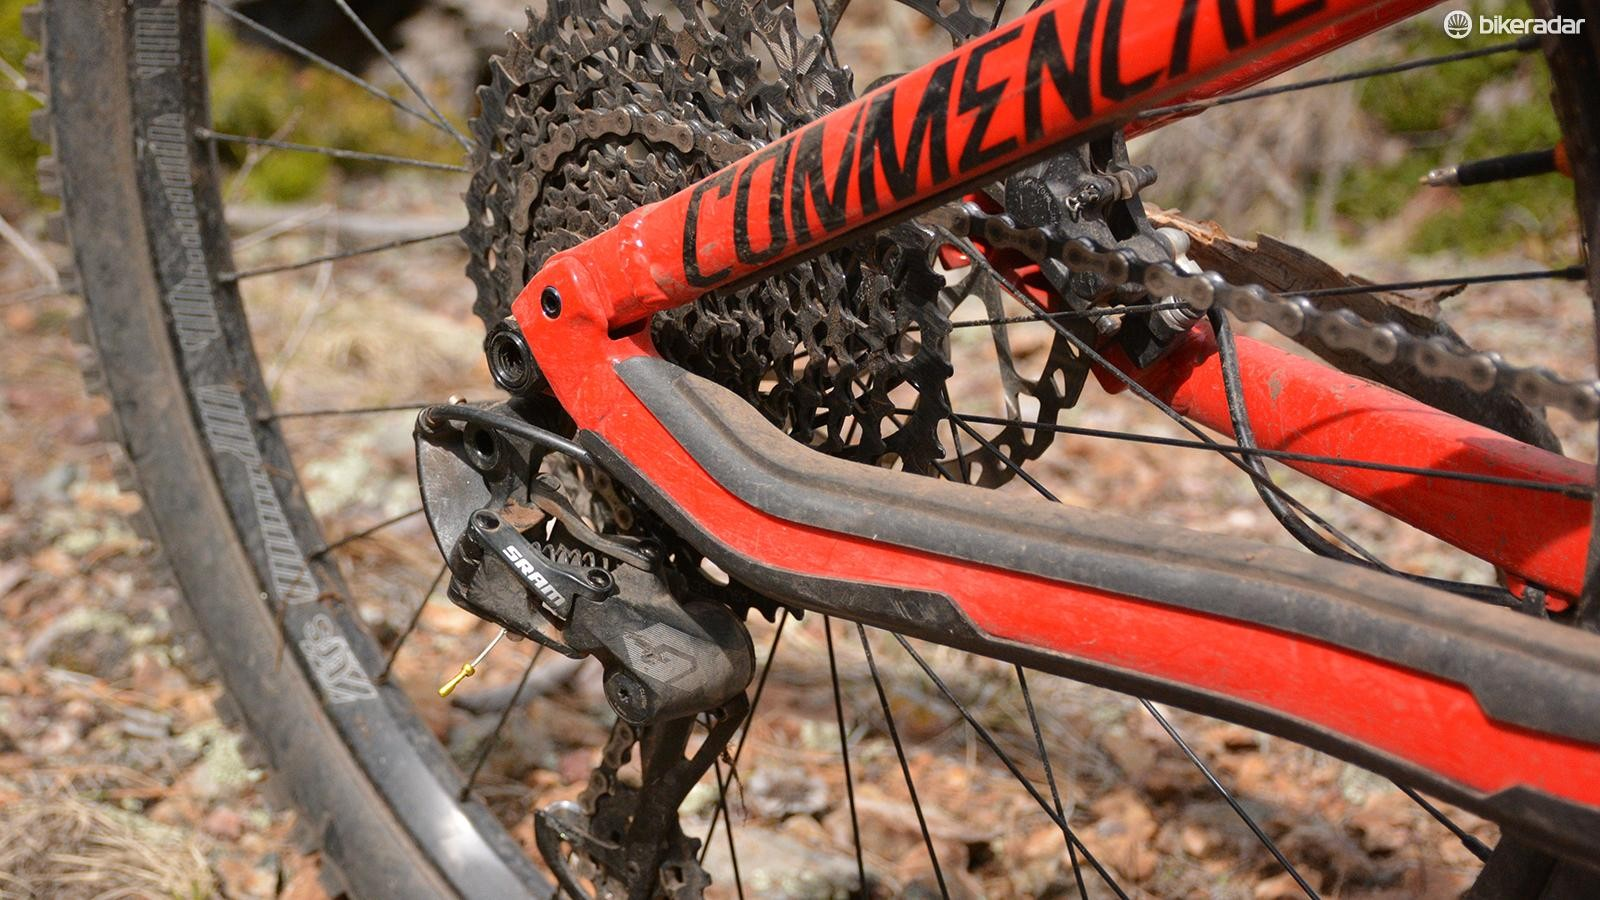 It's hard to argue with 12-speeds from SRAM's GX Eagle